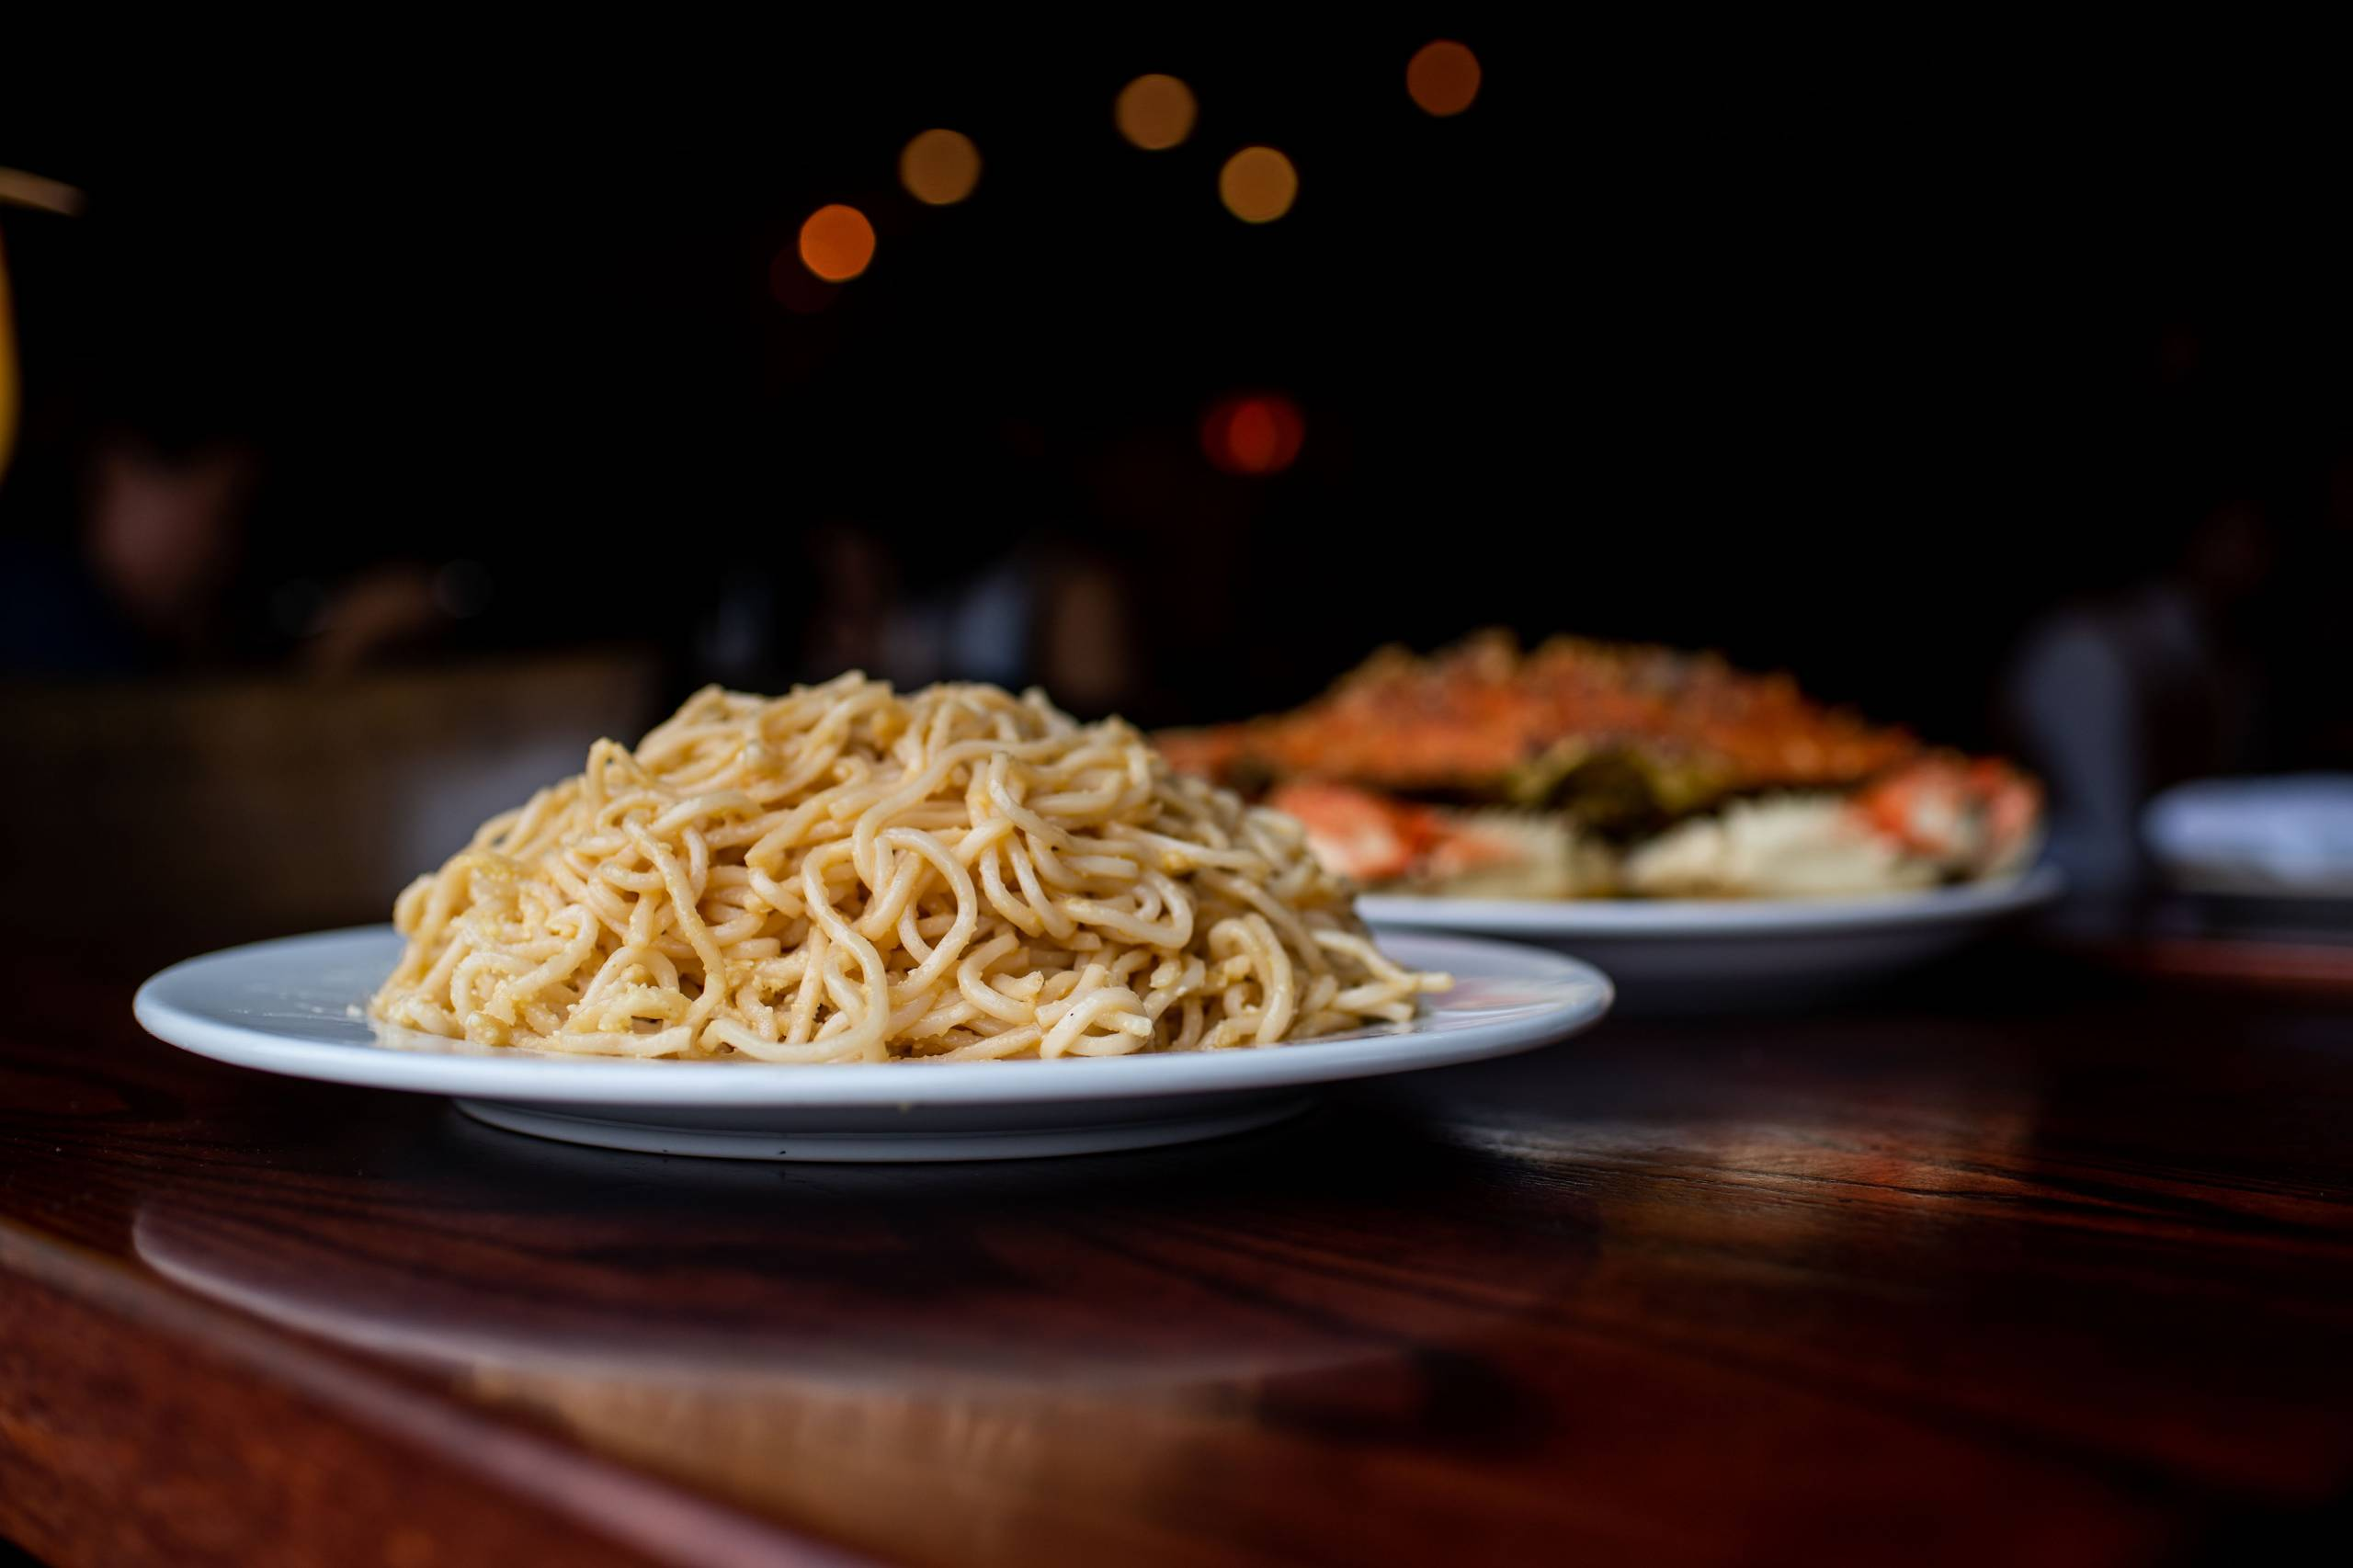 A plate piled high with garlic noodles on a table, in front of a plate of whole roast crab.